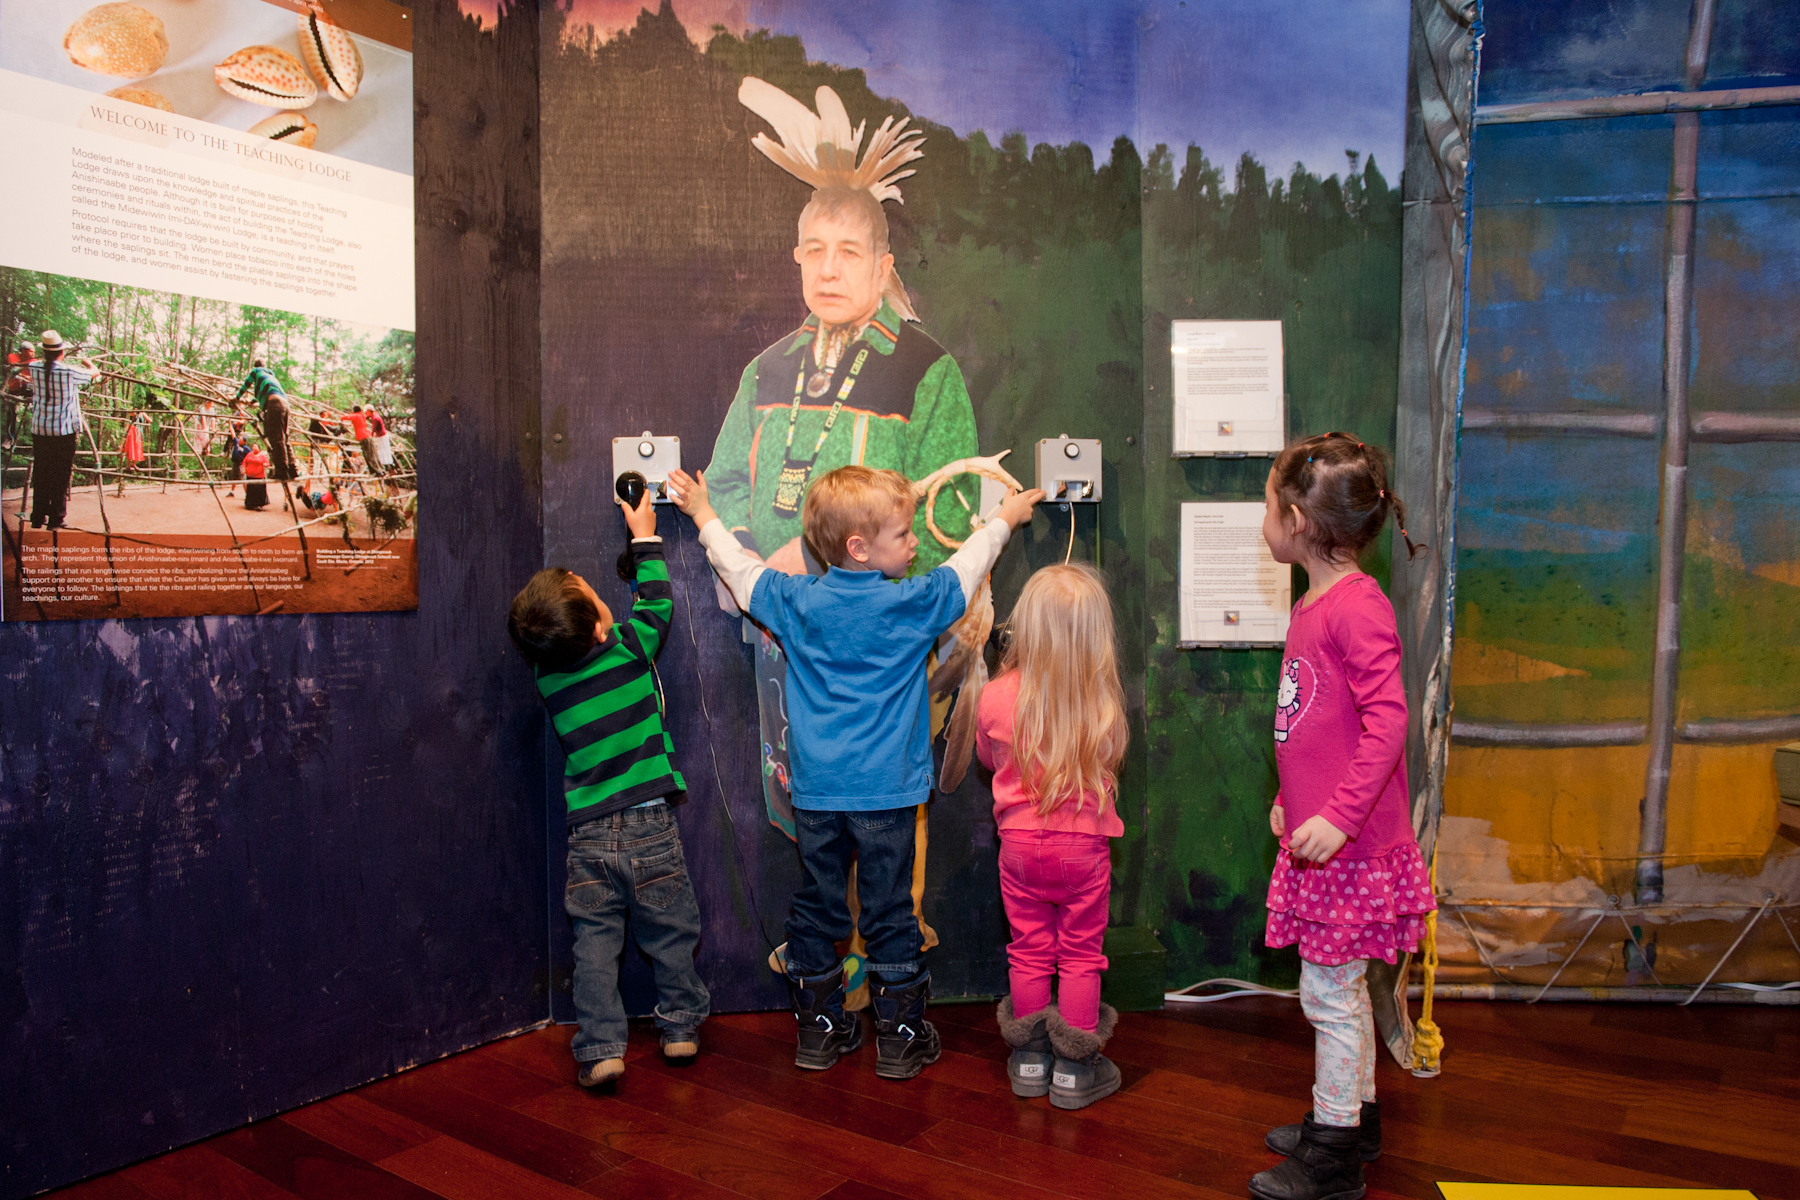 Visit the We Are Here exhibition in celebration of Indigenous History Month